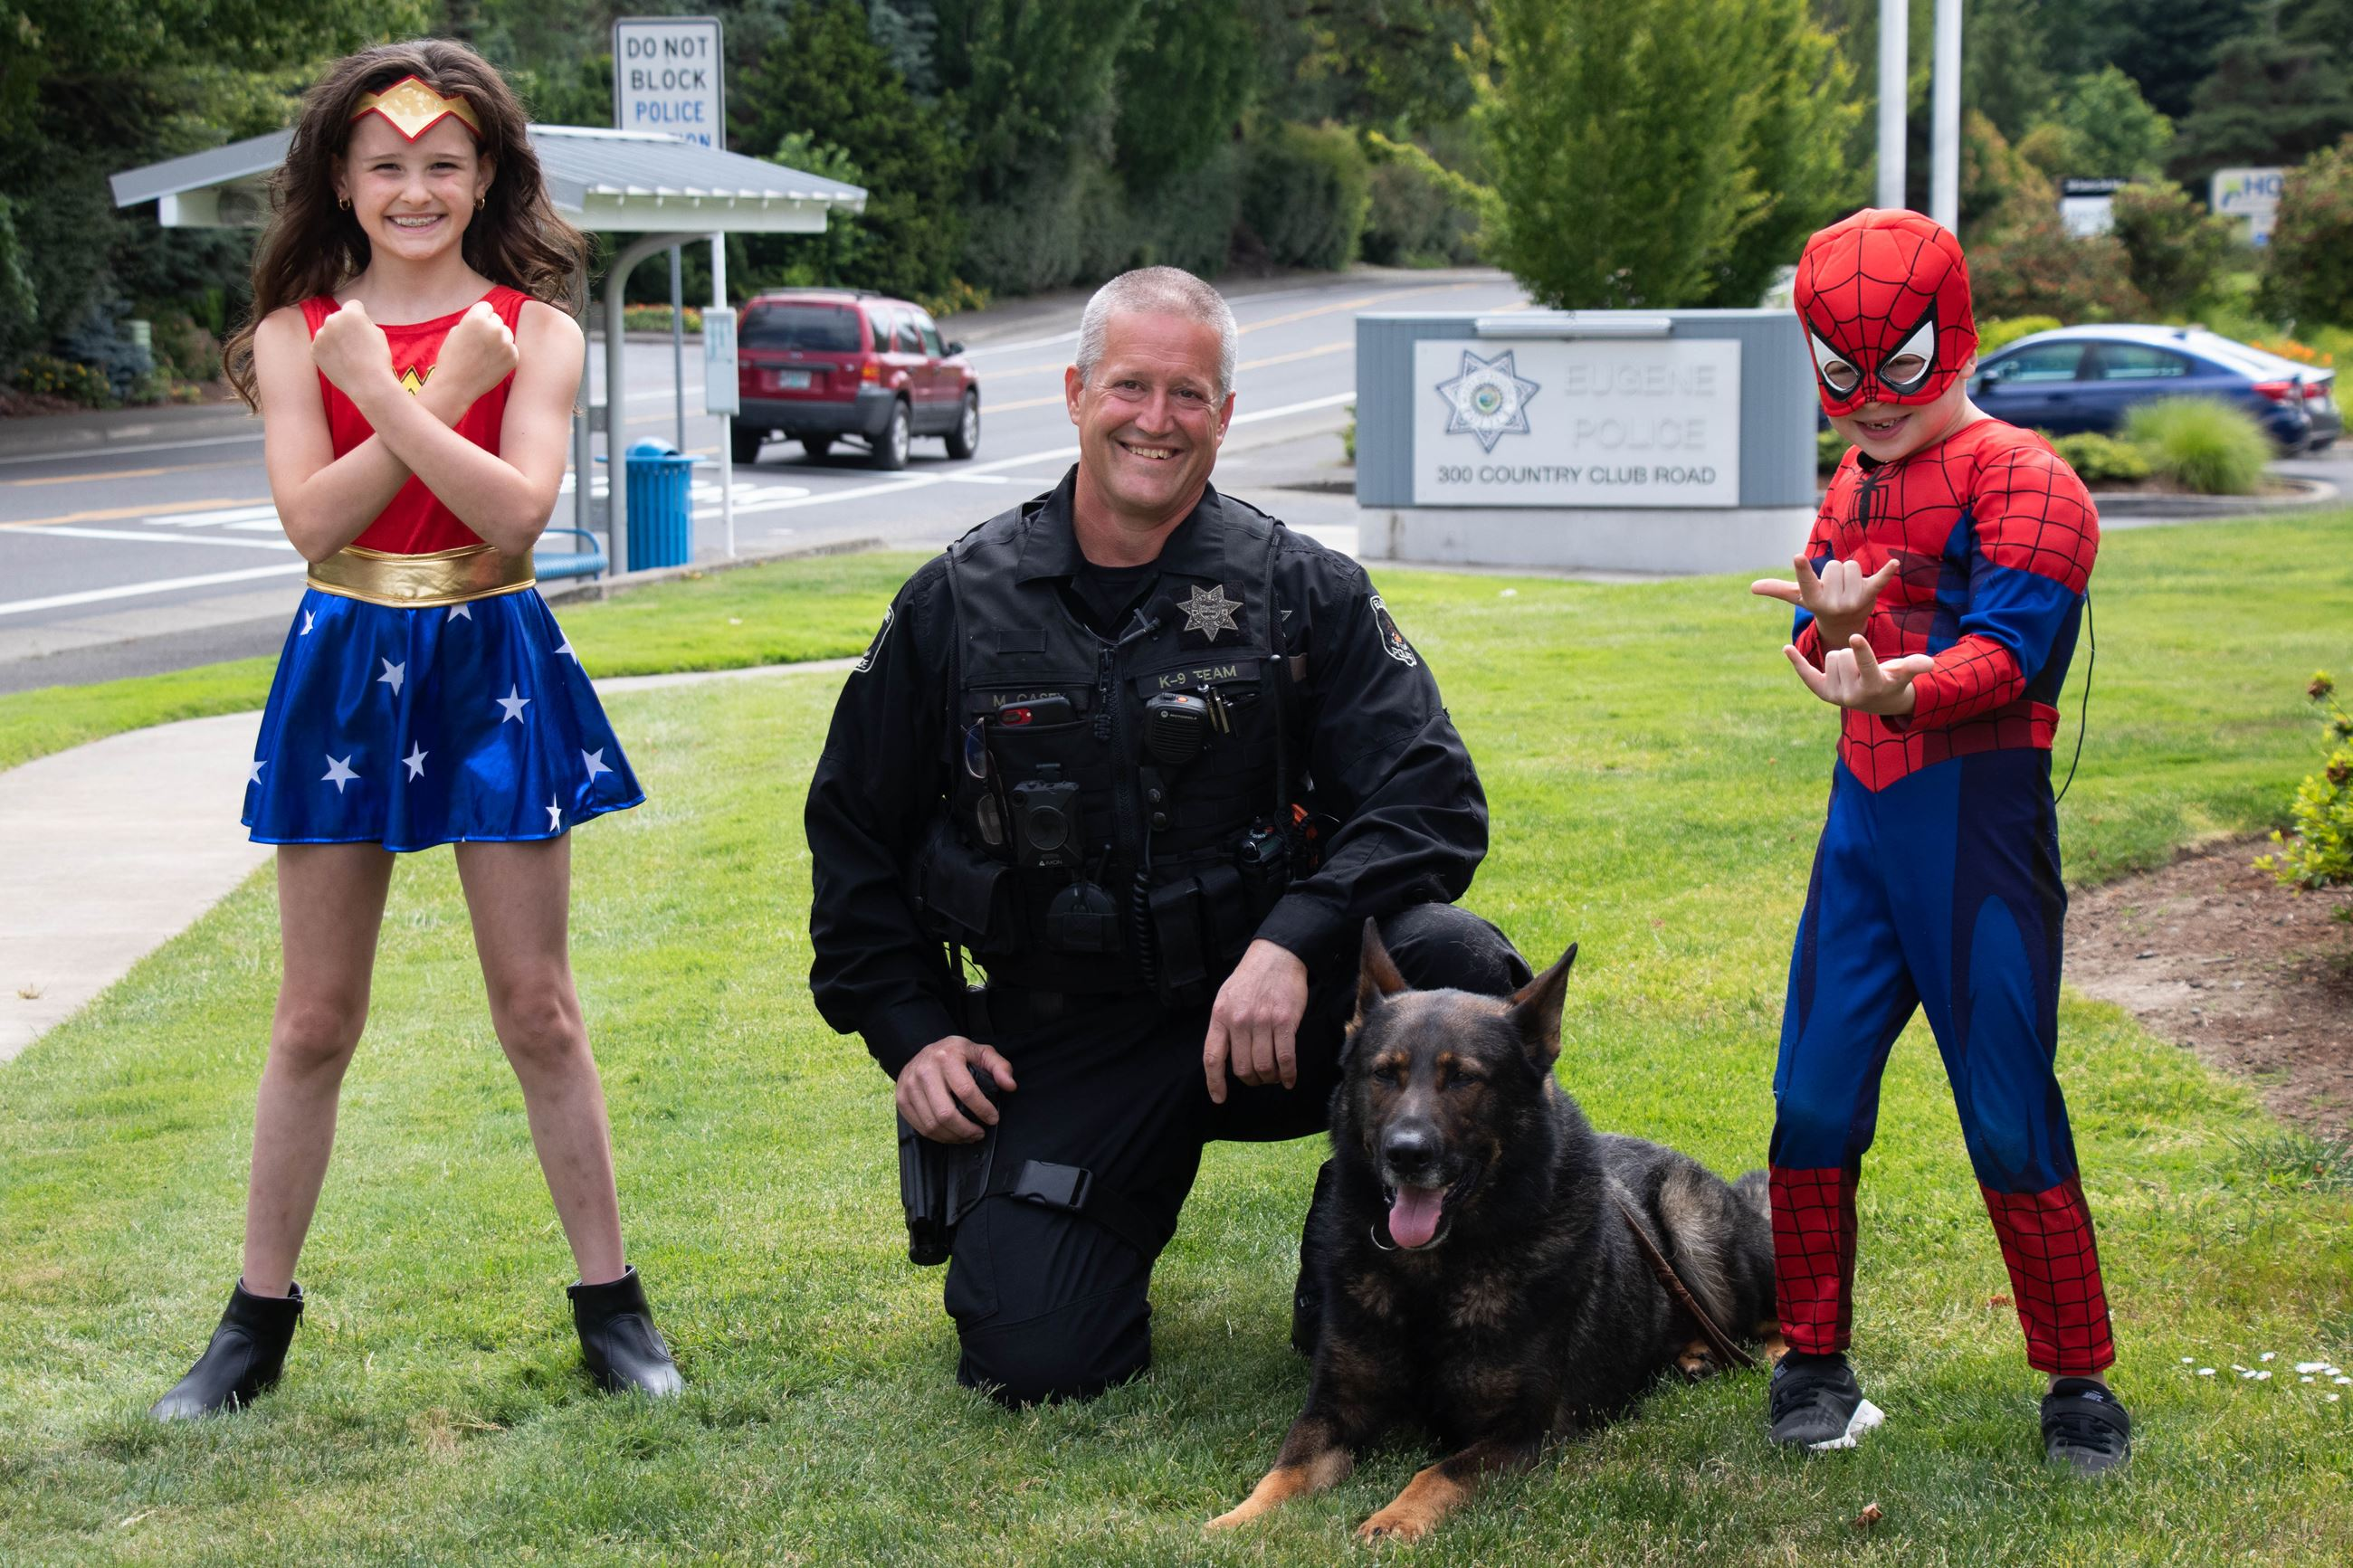 K9 and child superheros